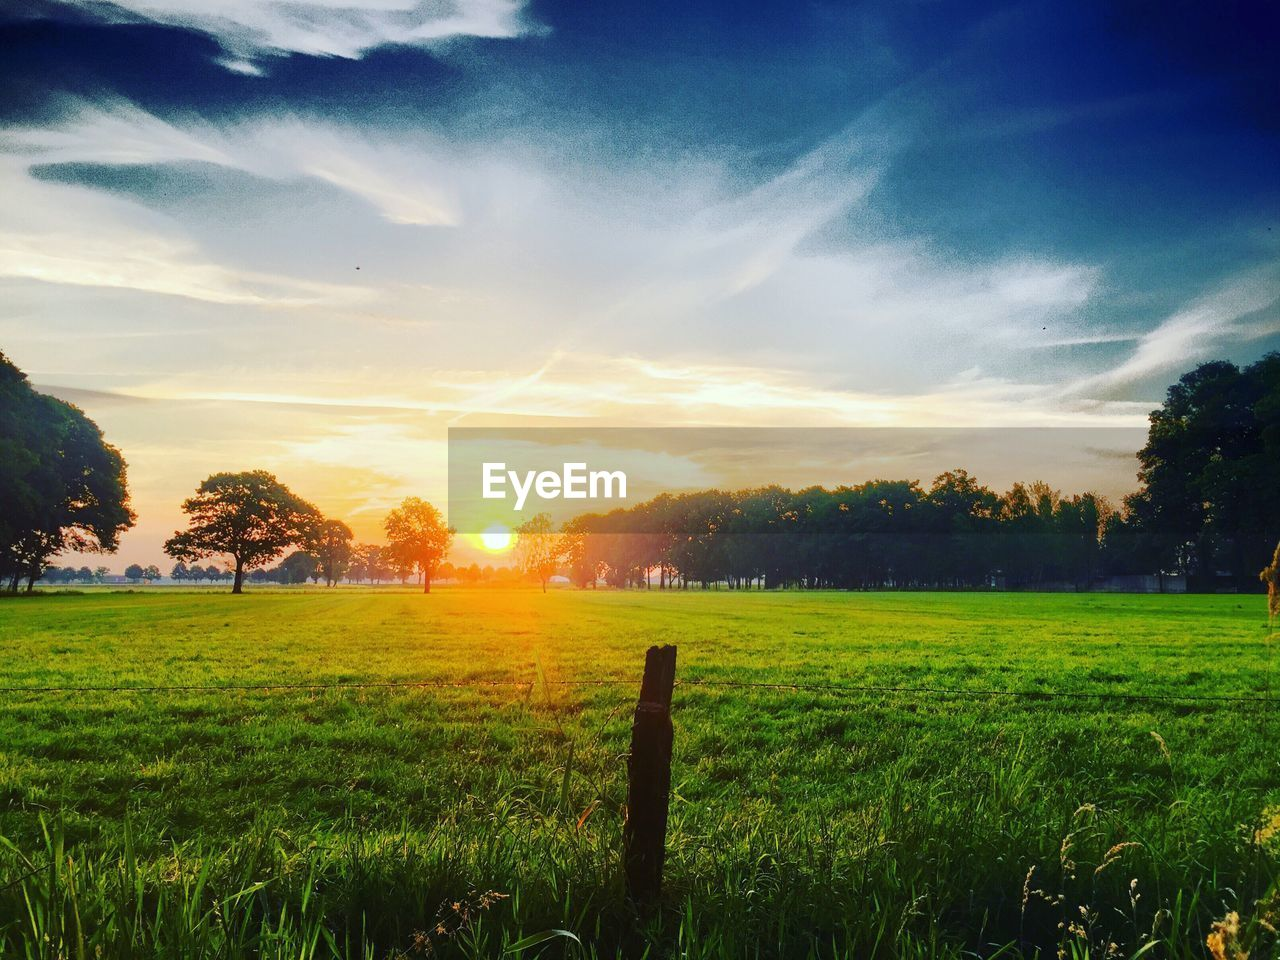 sky, tranquil scene, field, tranquility, beauty in nature, scenics - nature, plant, landscape, sunset, grass, cloud - sky, land, environment, green color, tree, nature, no people, sunlight, growth, sun, outdoors, lens flare, bright